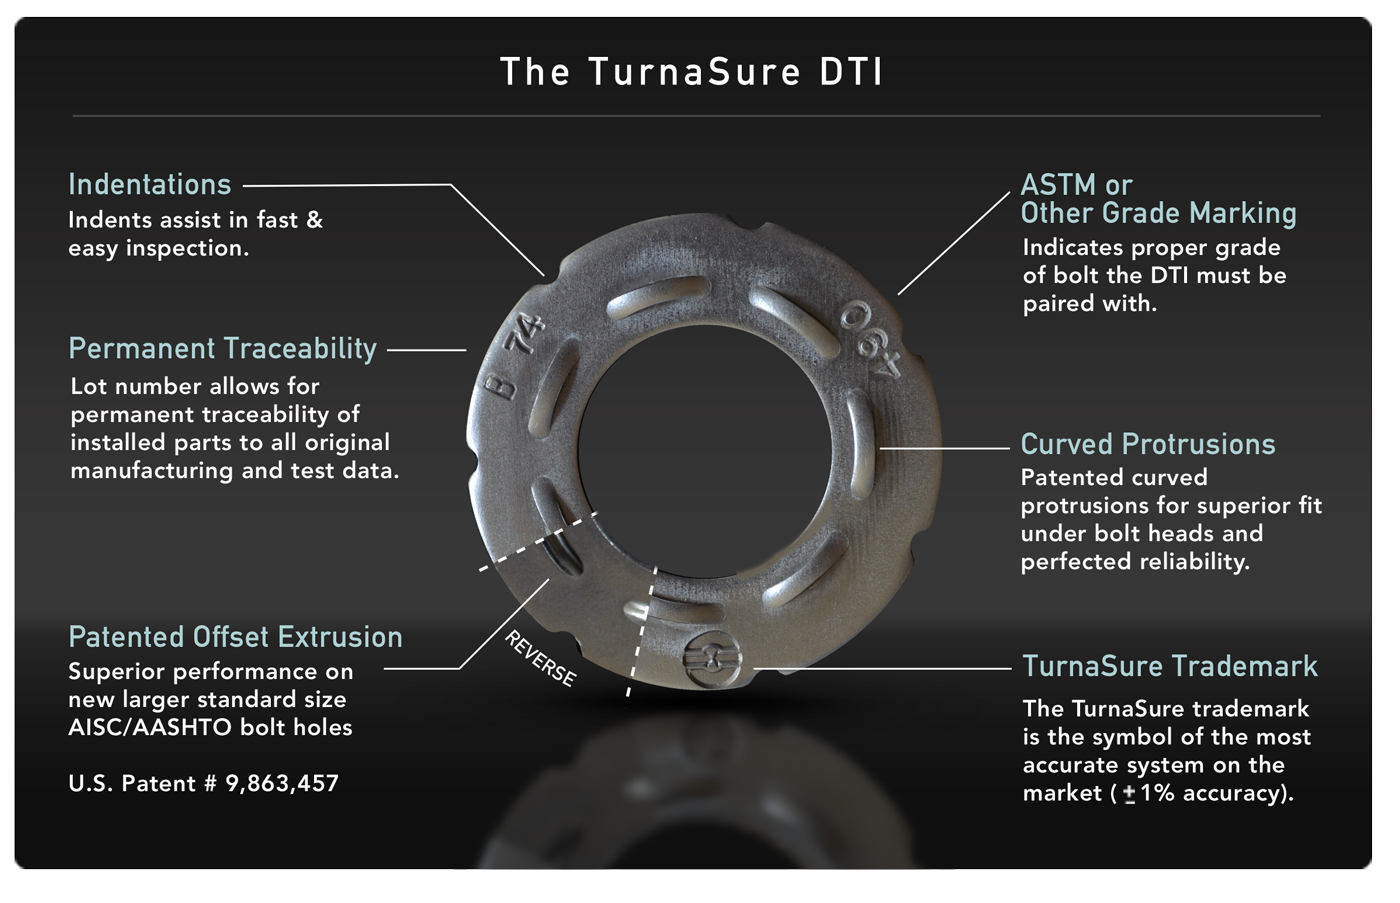 Details of the TurnaSure DTI